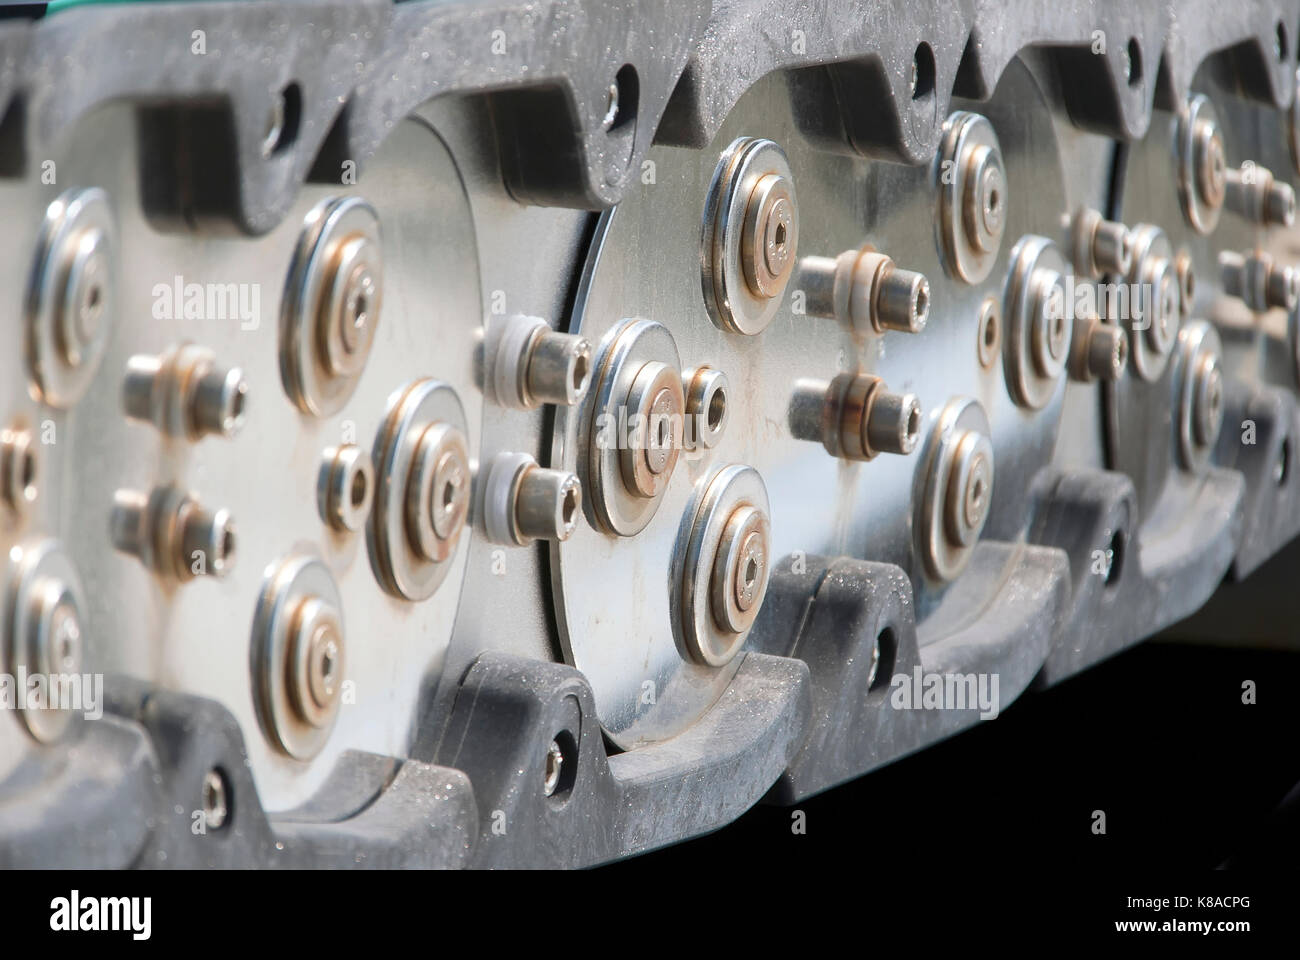 Steel link chain conveyor system Stock Photo: 160040120 - Alamy